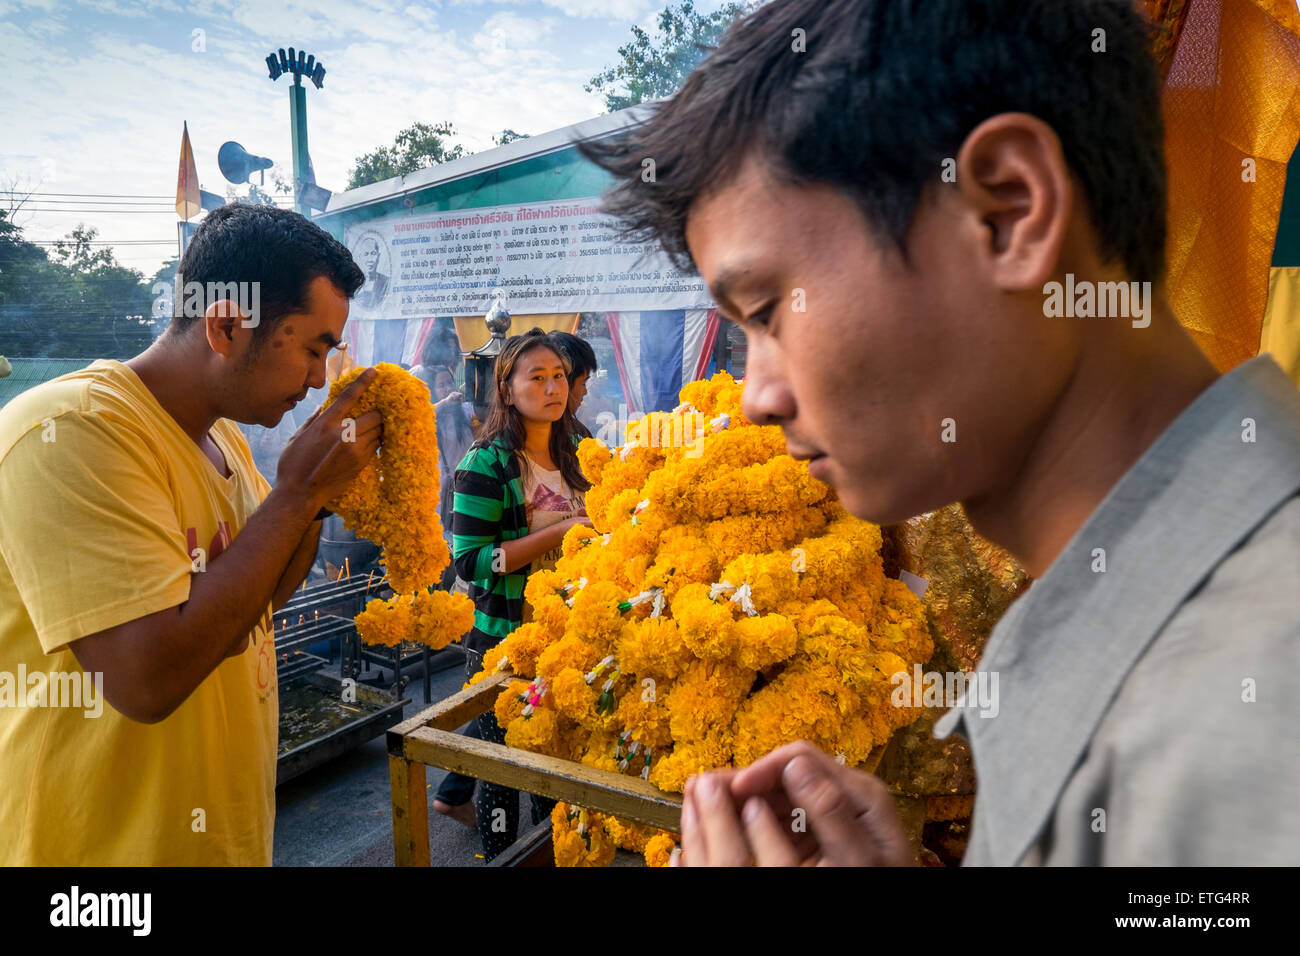 Asia. Thailand, Chiang Mai. Believer praying at the temple. - Stock Image